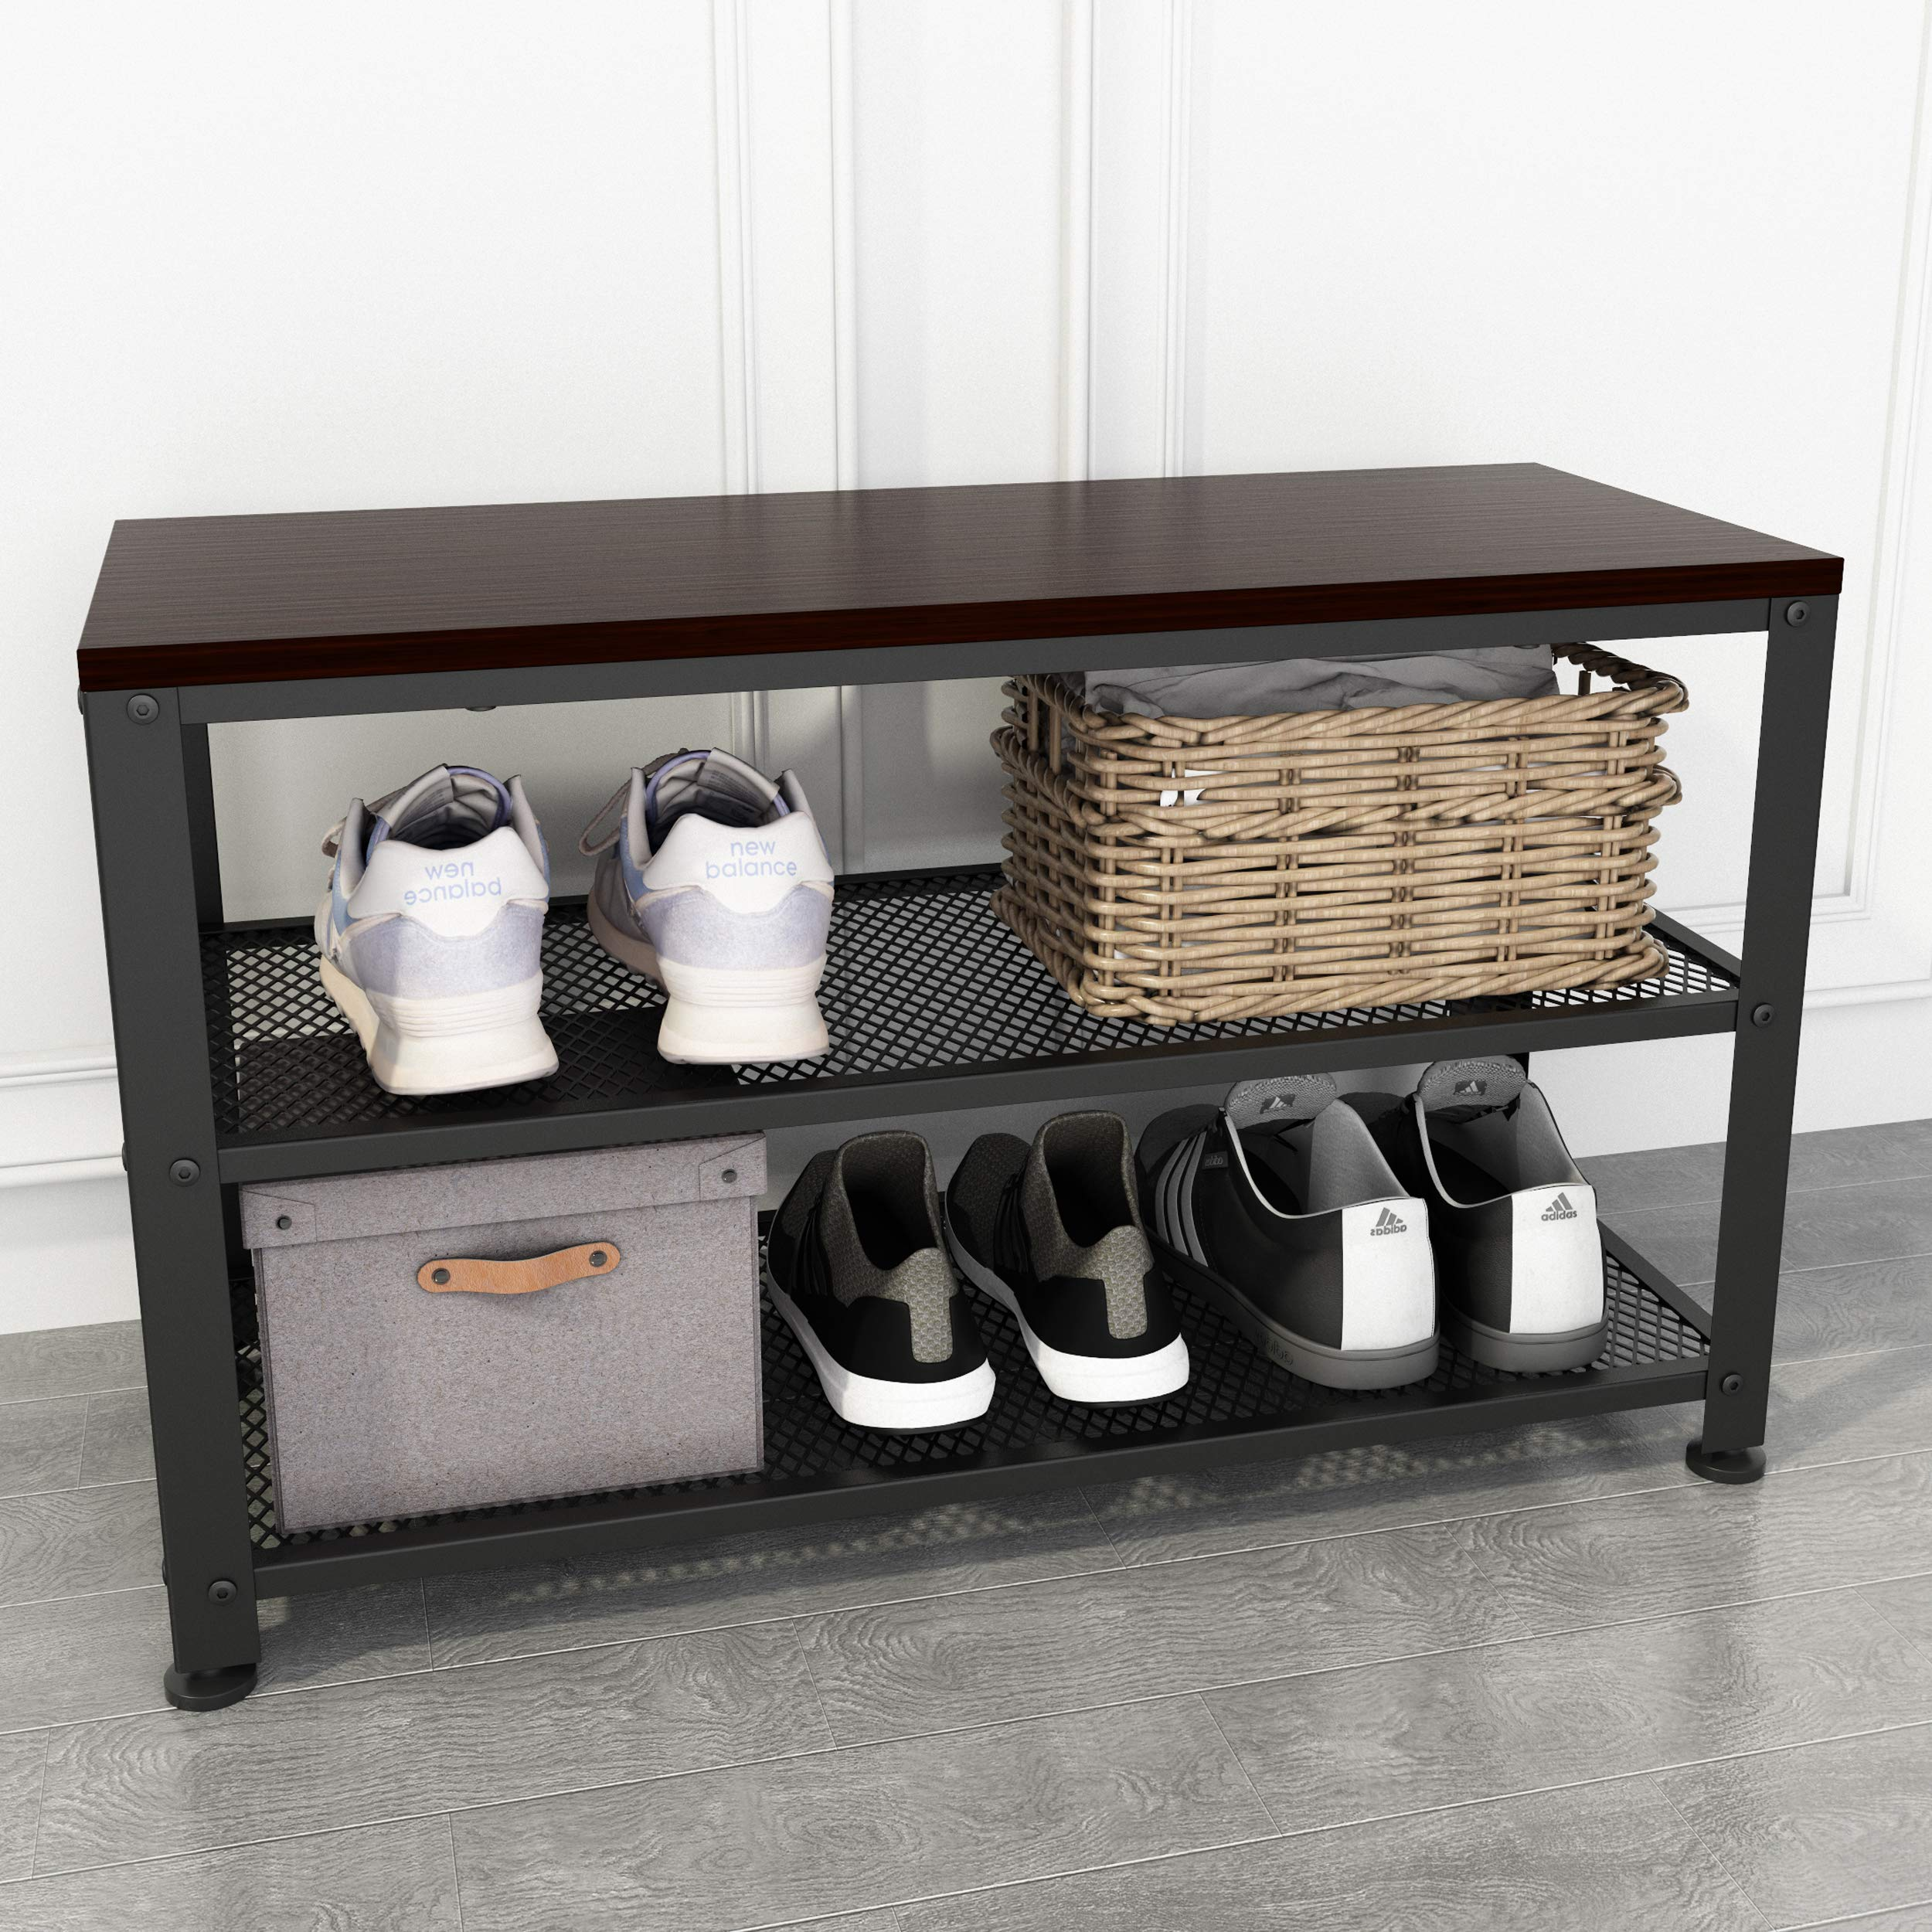 Simpdiy Sturdy Shoe Bench Storage Bench 2 Tier Shoe Rack With Seat Industrial Shoe Bench For Small Spaces Entryway Foyer Hallway Black Walnut Finish